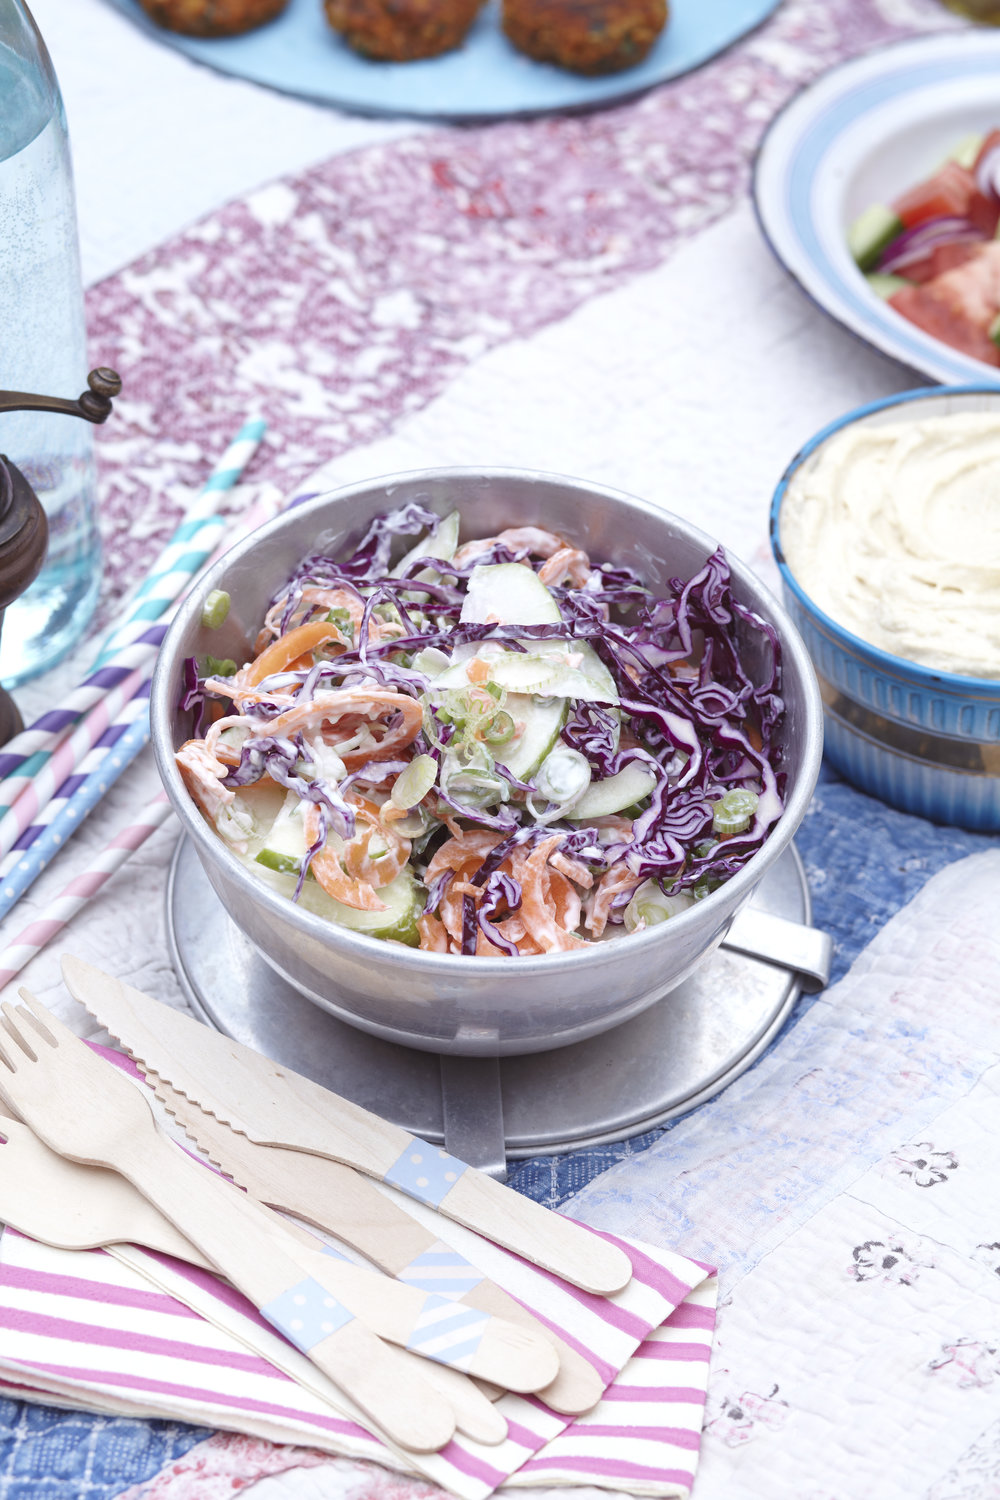 Ginger, chilli and carrot coleslaw